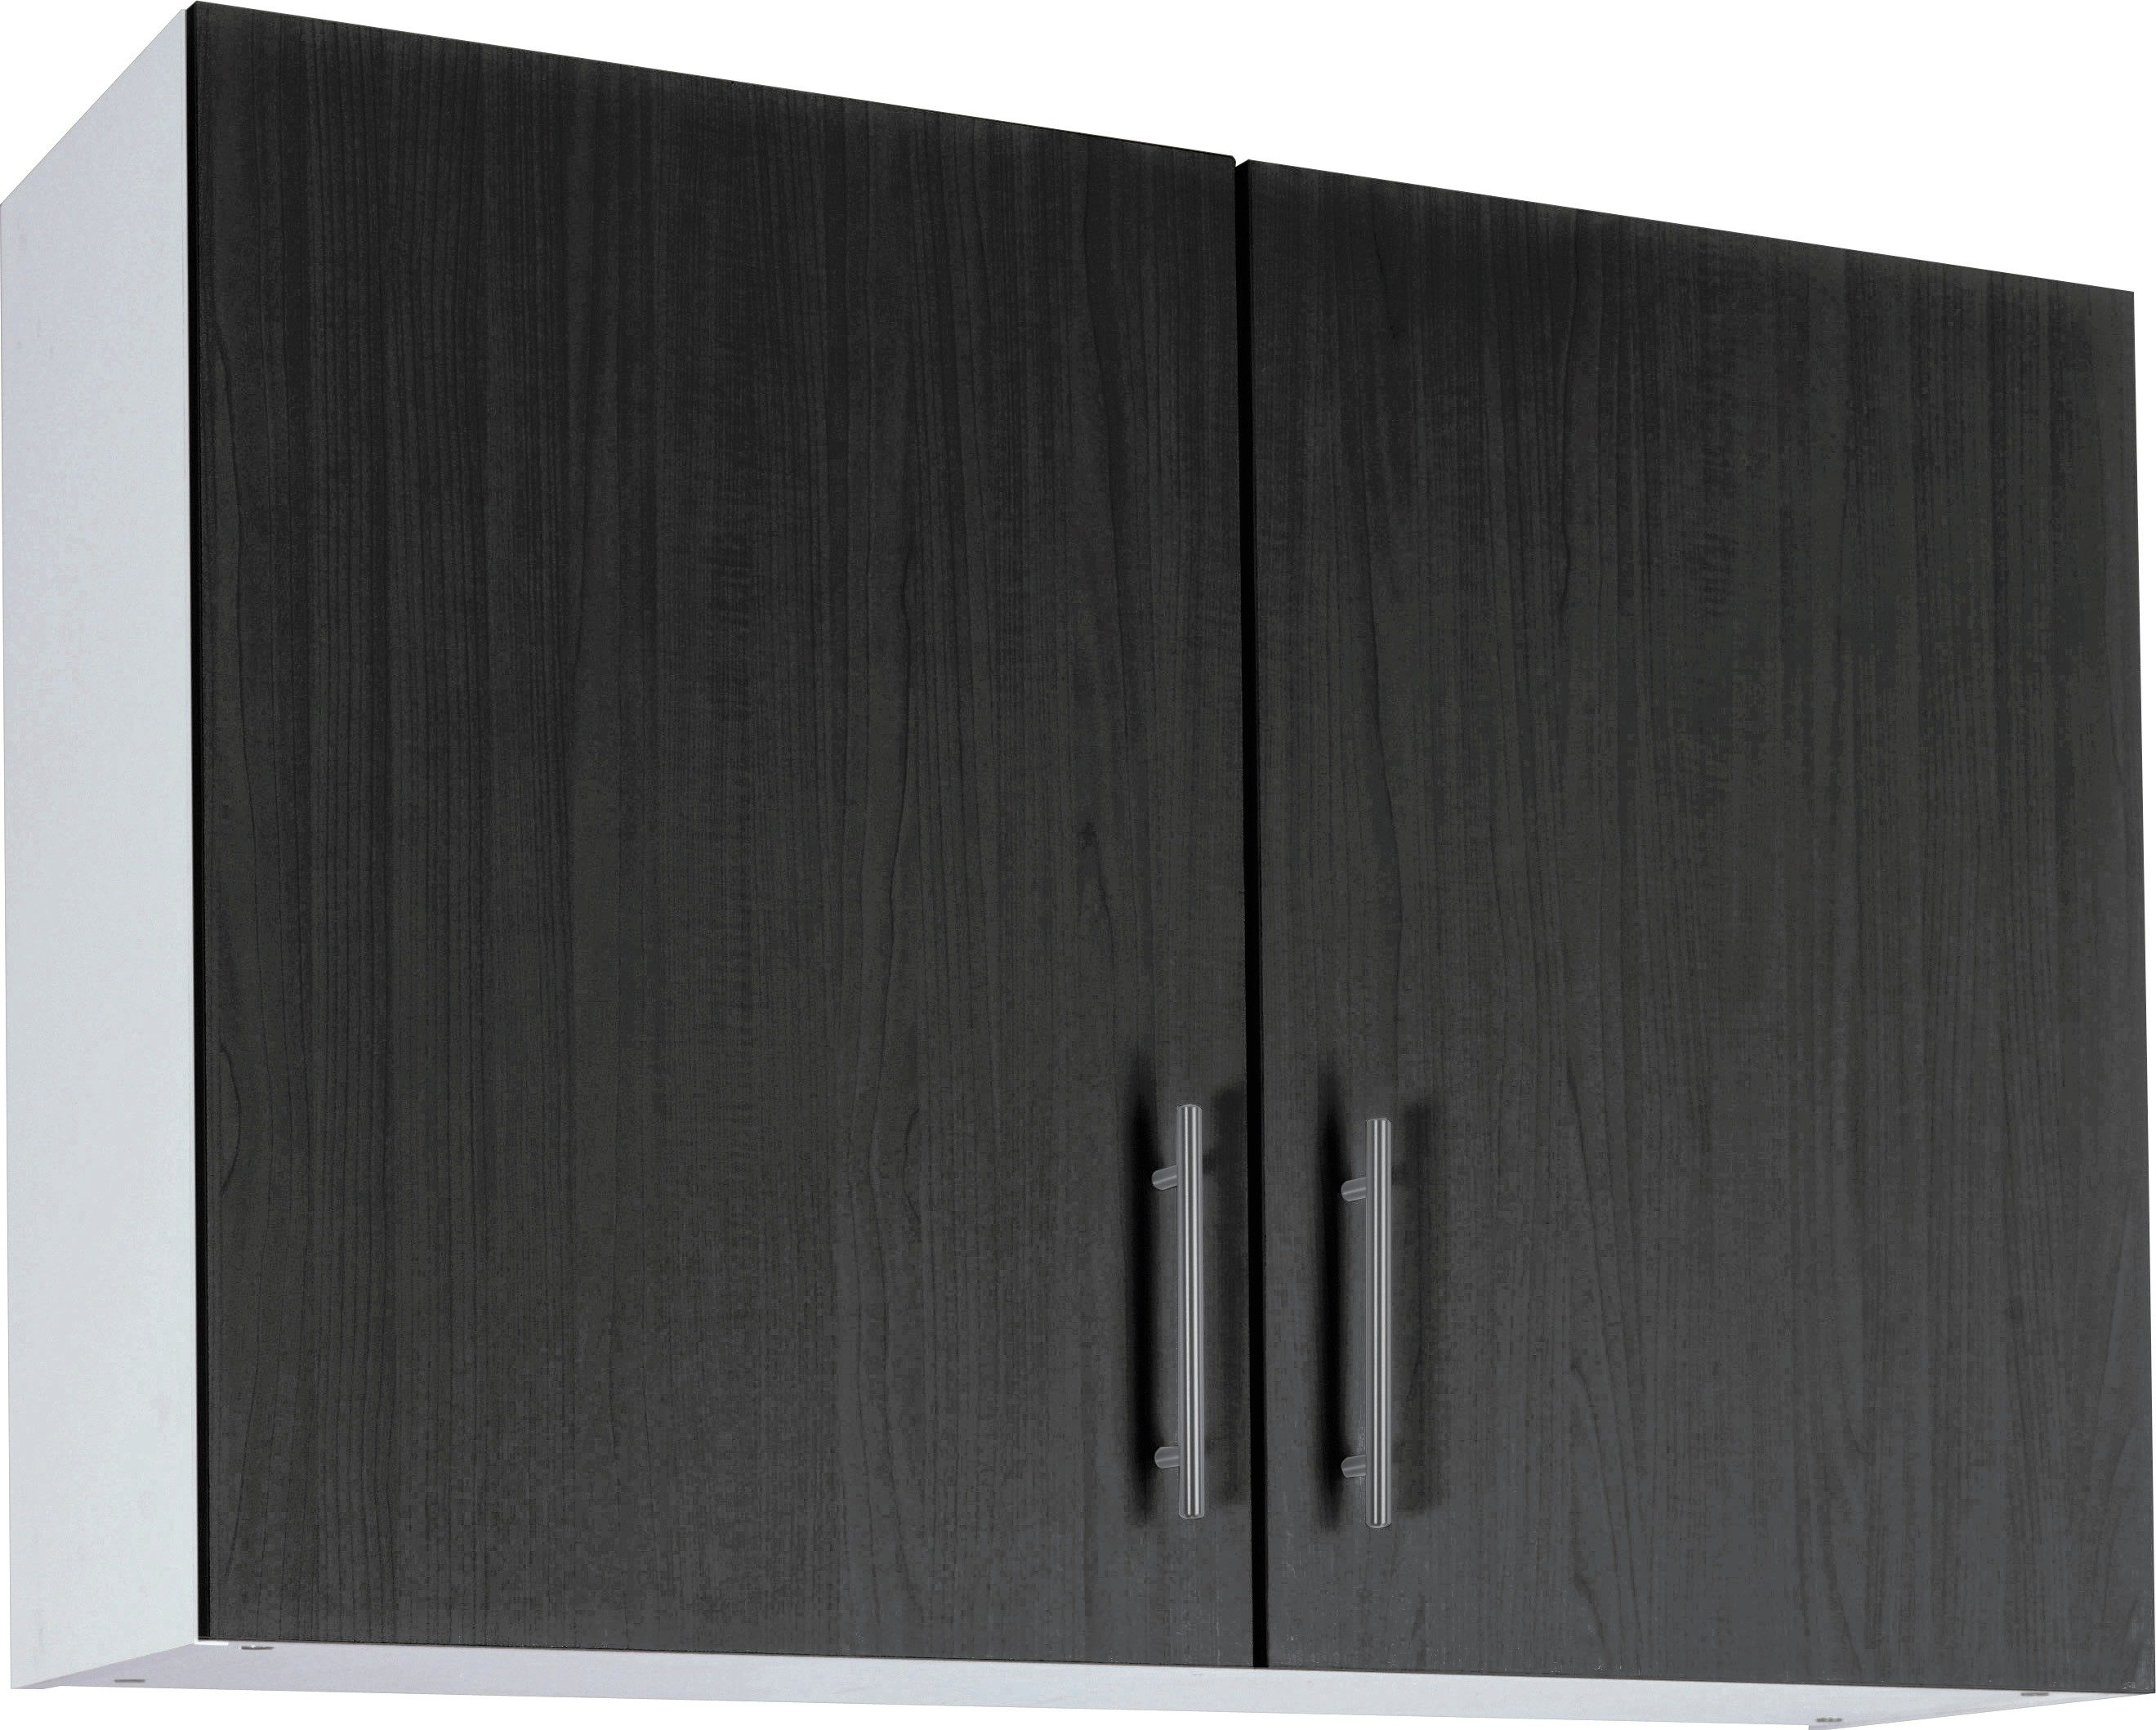 Athina 1000mm Fitted Kitchen Wall Unit - Black.